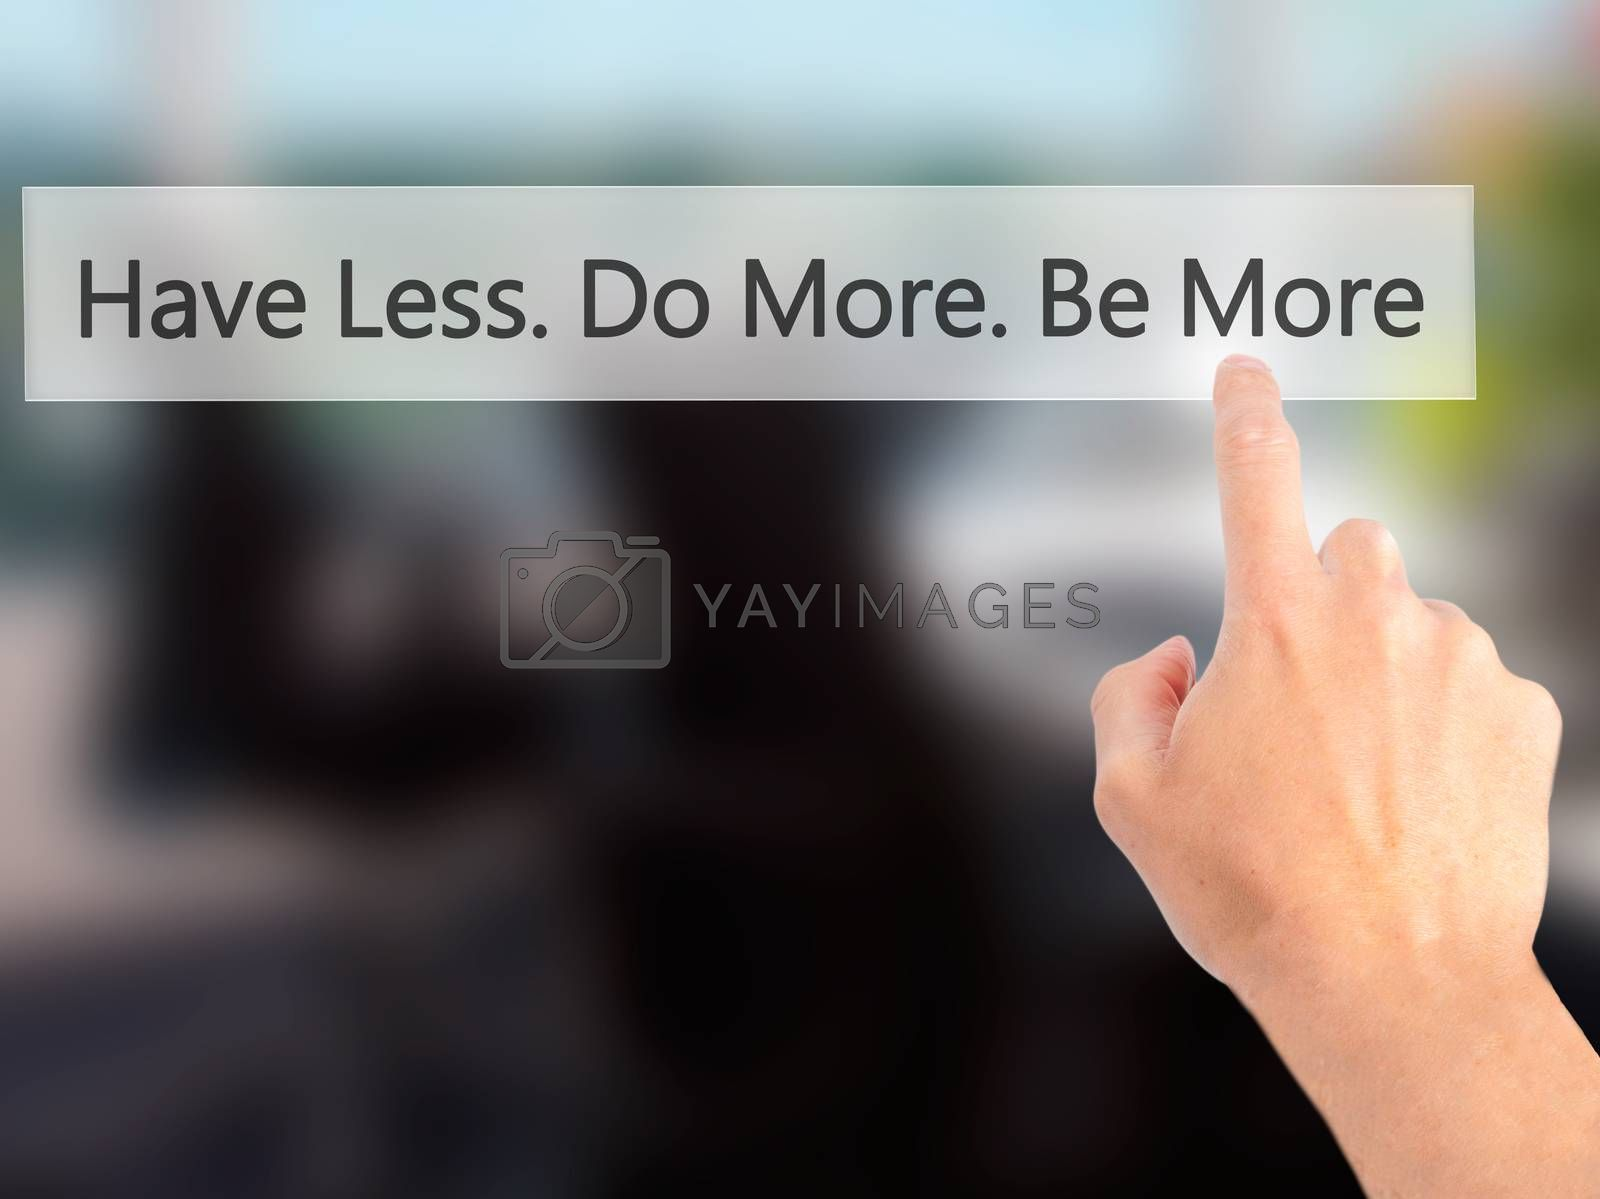 Have Less. Do More. Be More  - Hand pressing a button on blurred by netsay.net